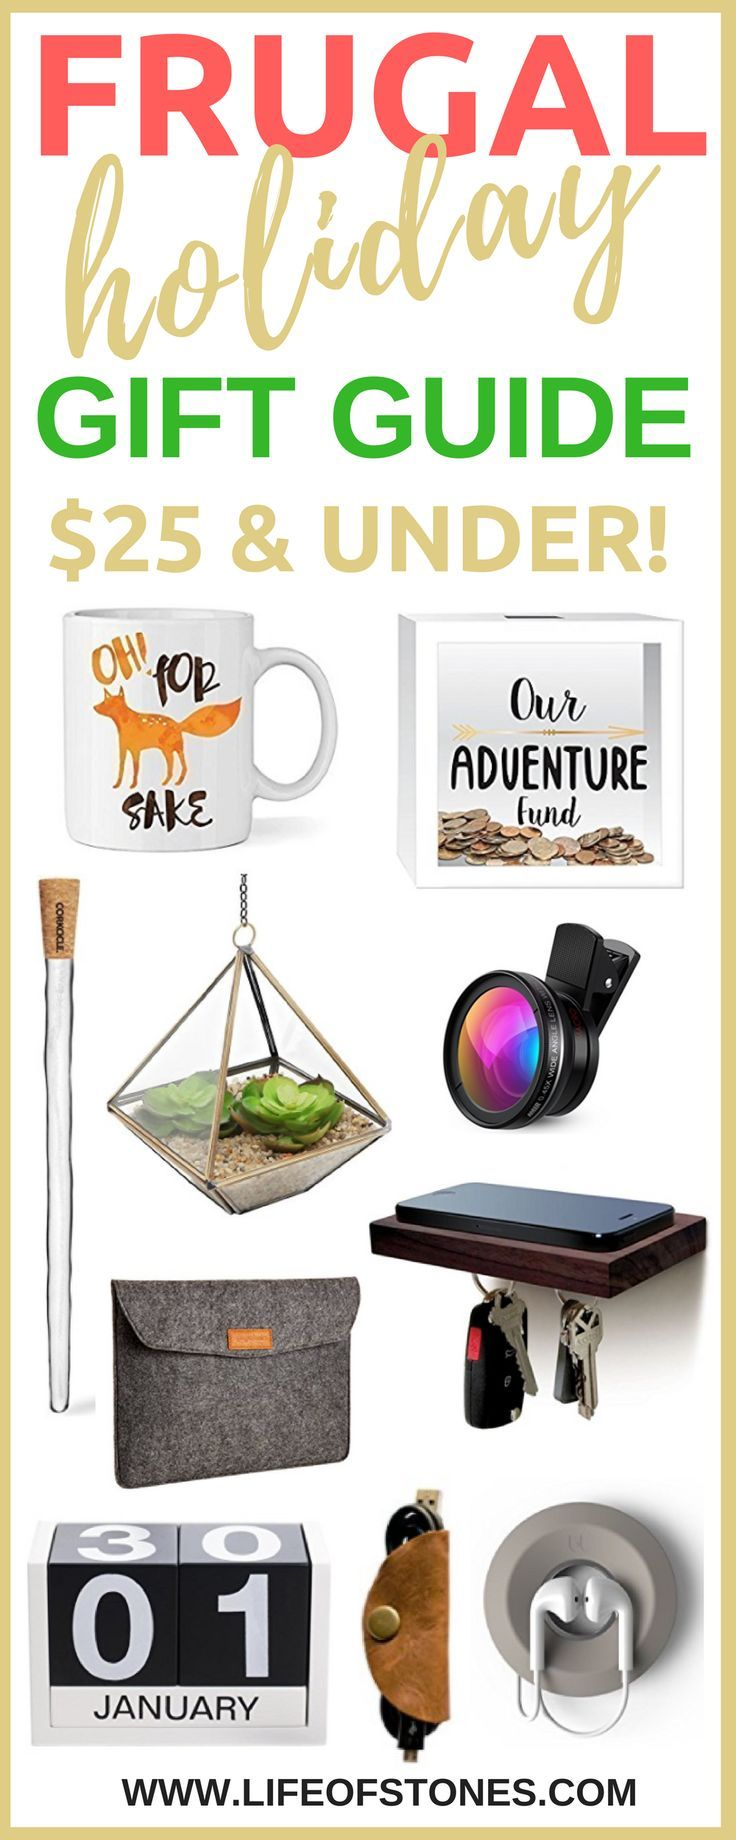 10 Frugal Gift Ideas For The Person Who Has Everything